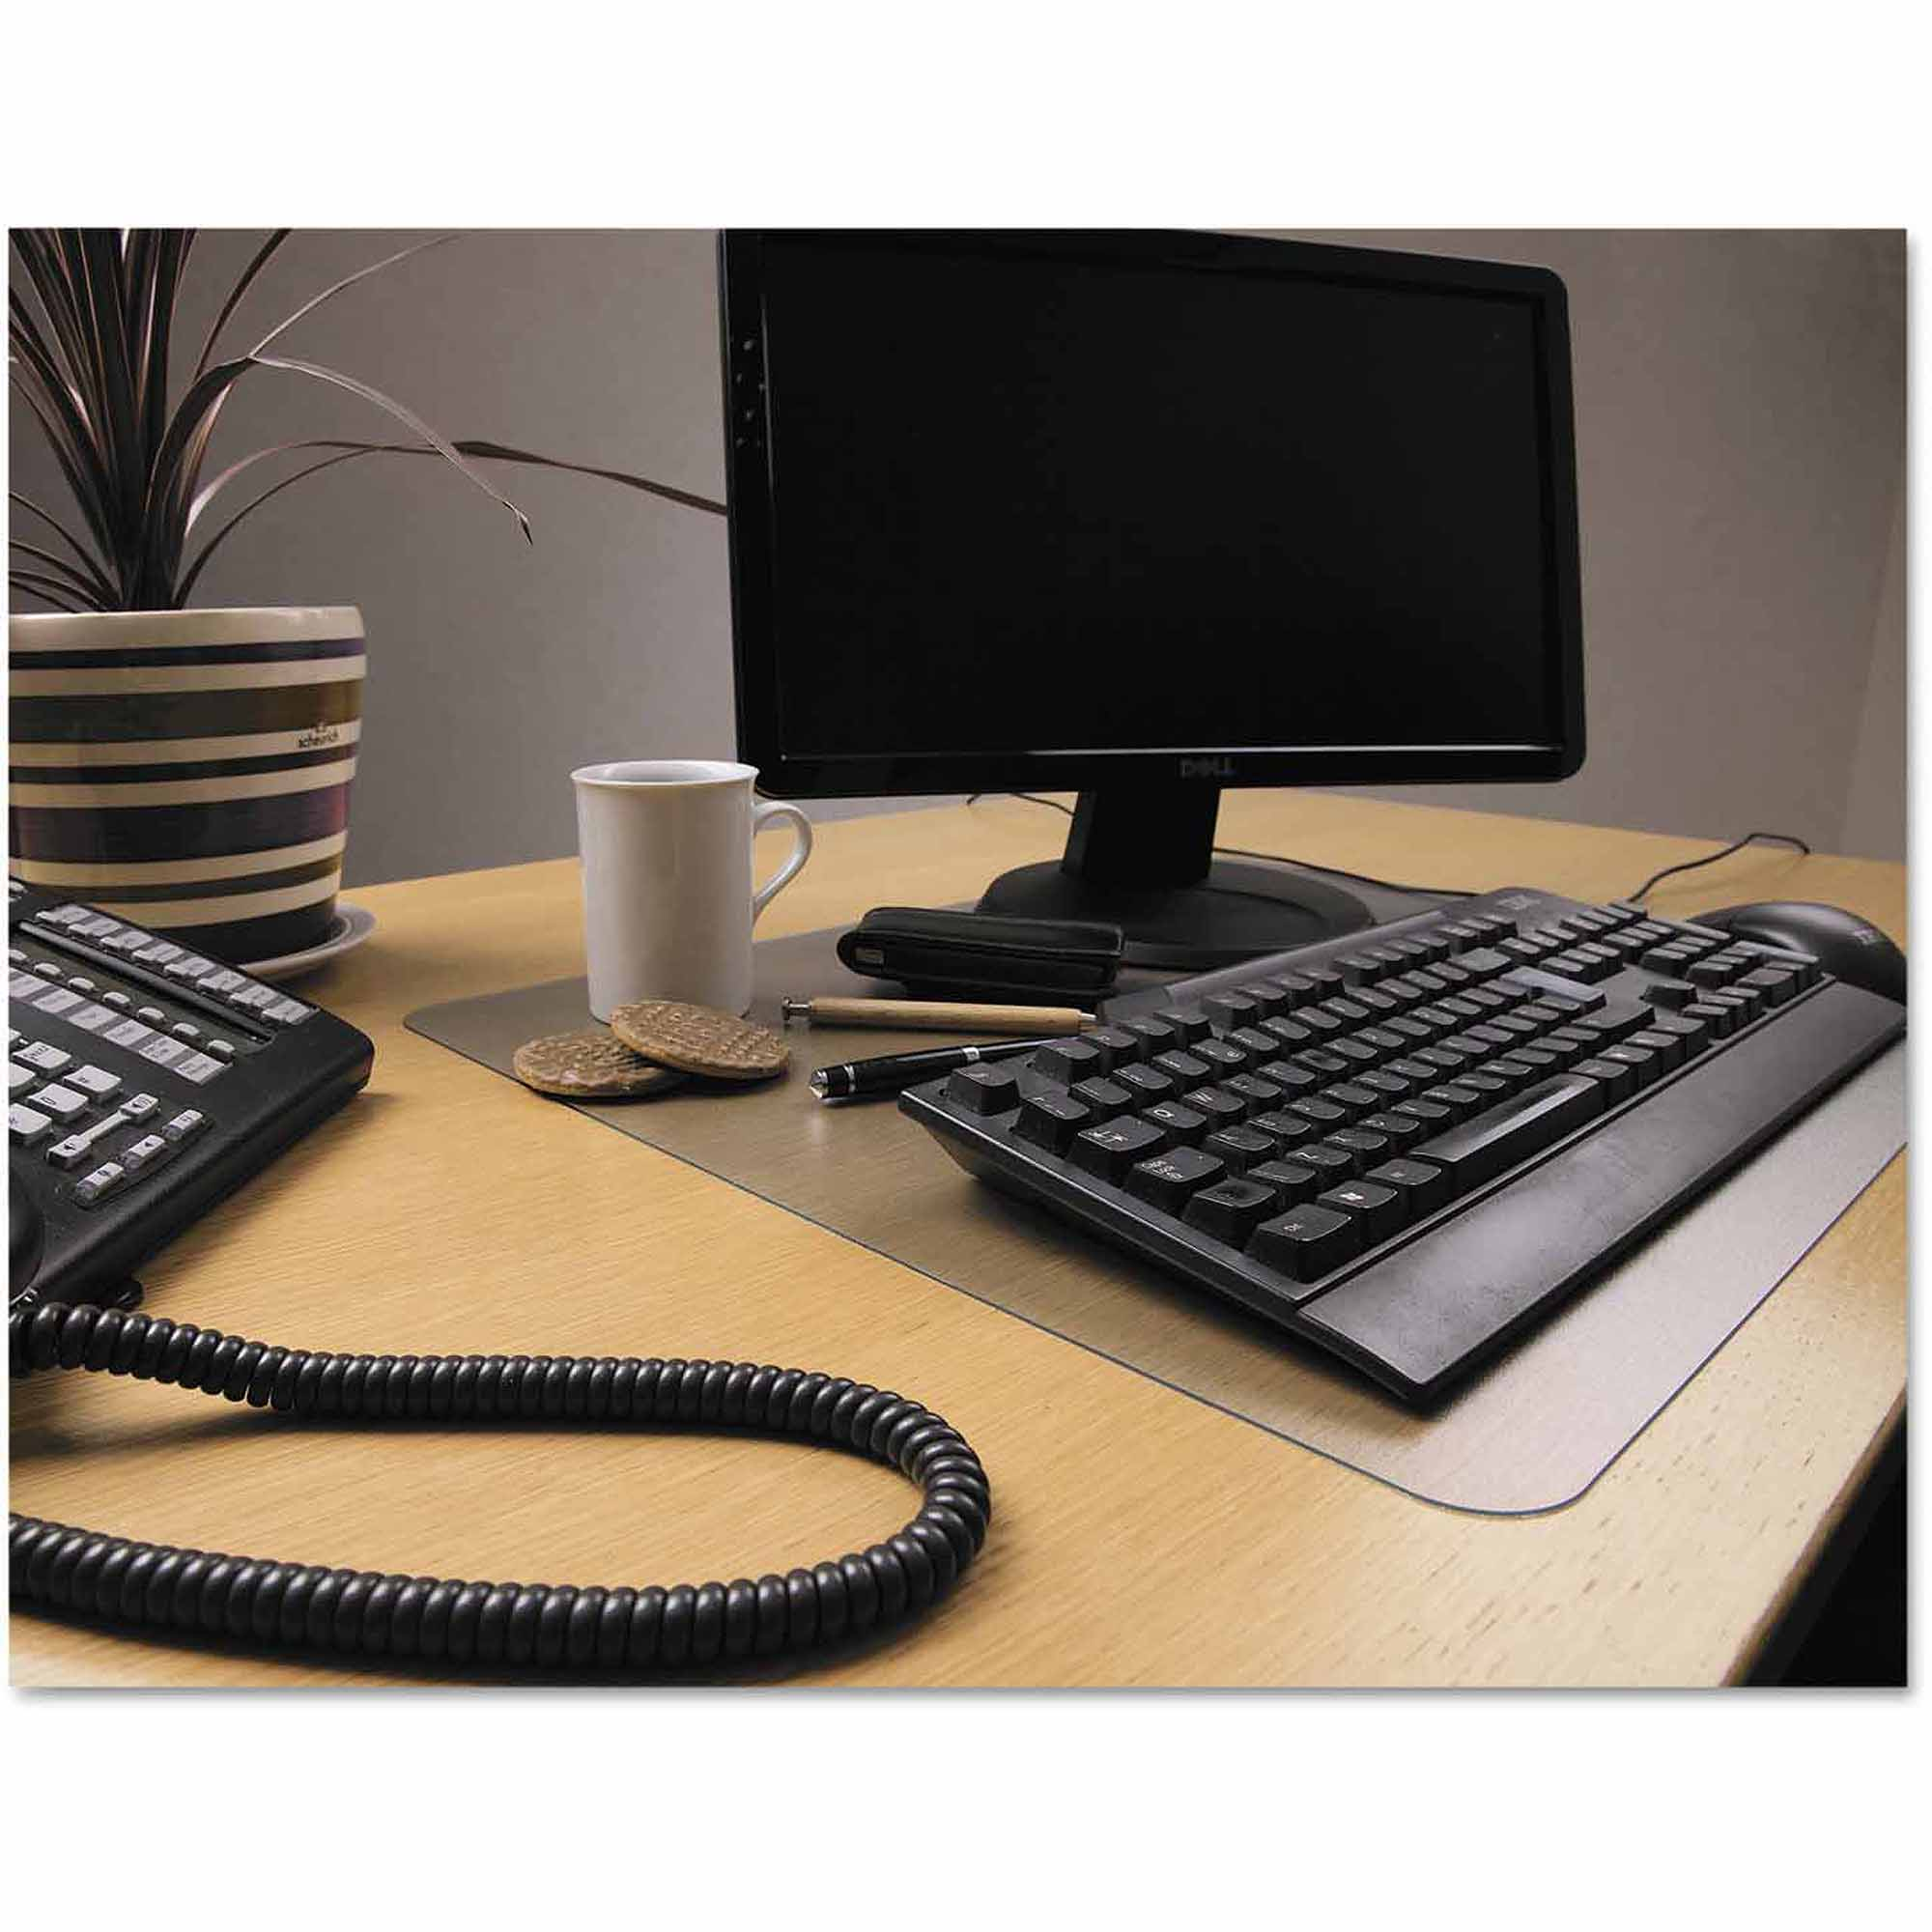 "Floortex Desktex Polycarbonate Anti-Slip Desk Mat, 22"" x 17"", Clear"